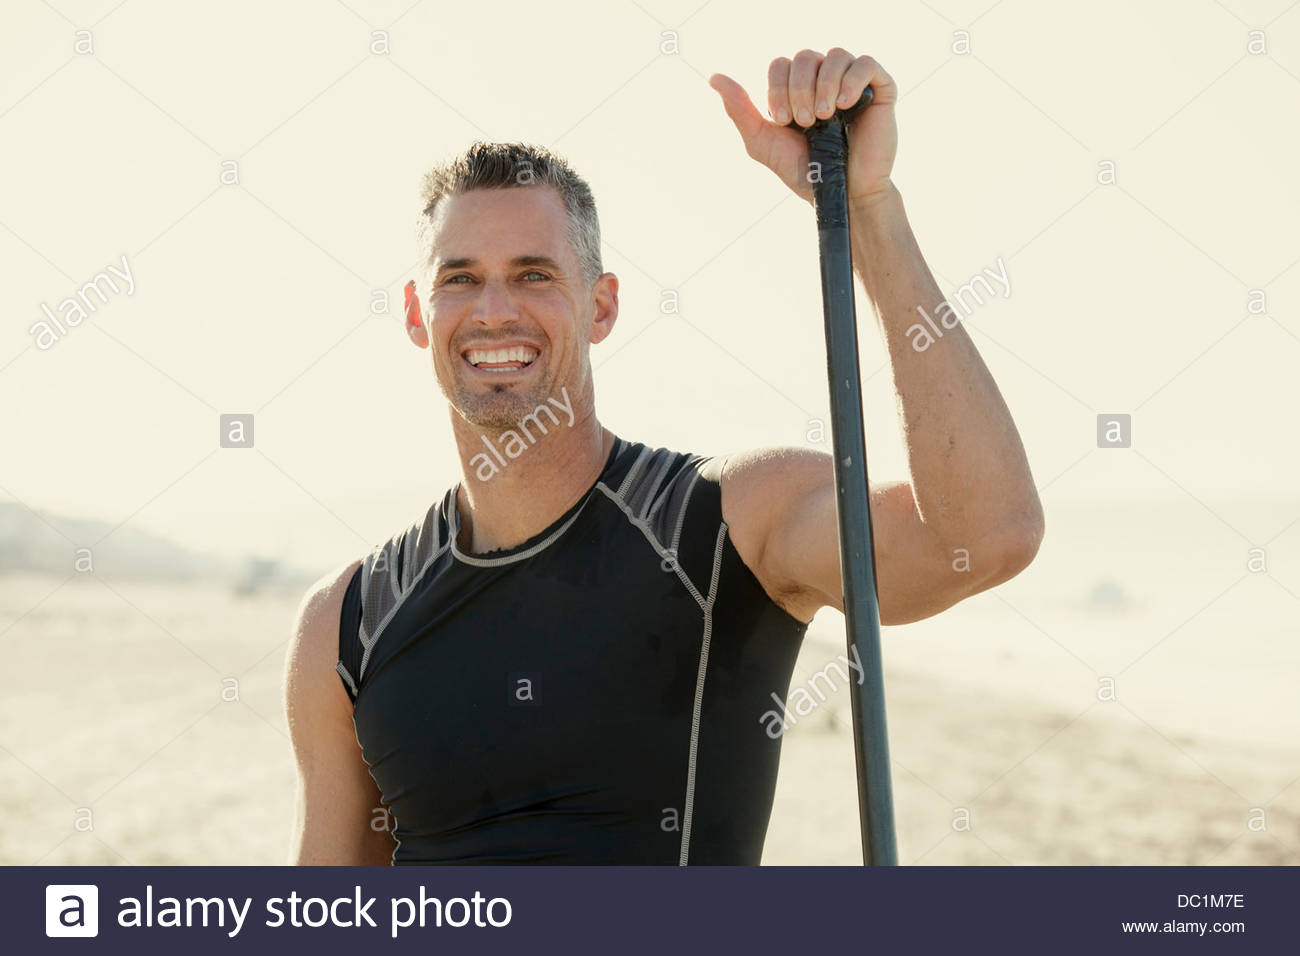 Mid adult man surfer standing with surf paddle on beach, portrait - Stock Image